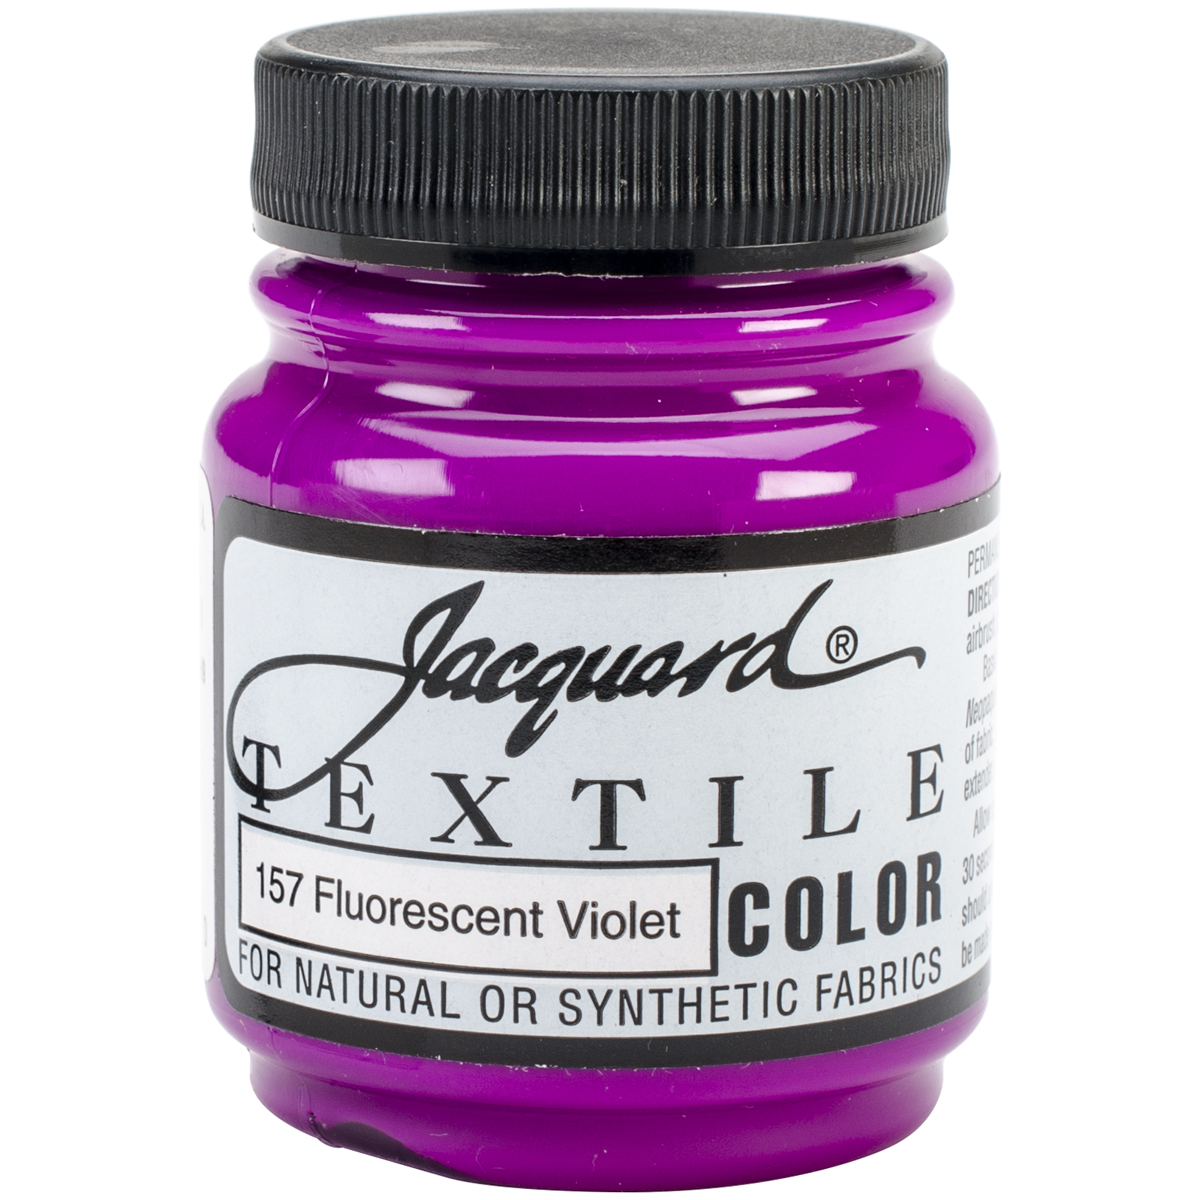 Jacquard Textile Color Fabric Paint 2.25oz-Fluorescent Violet